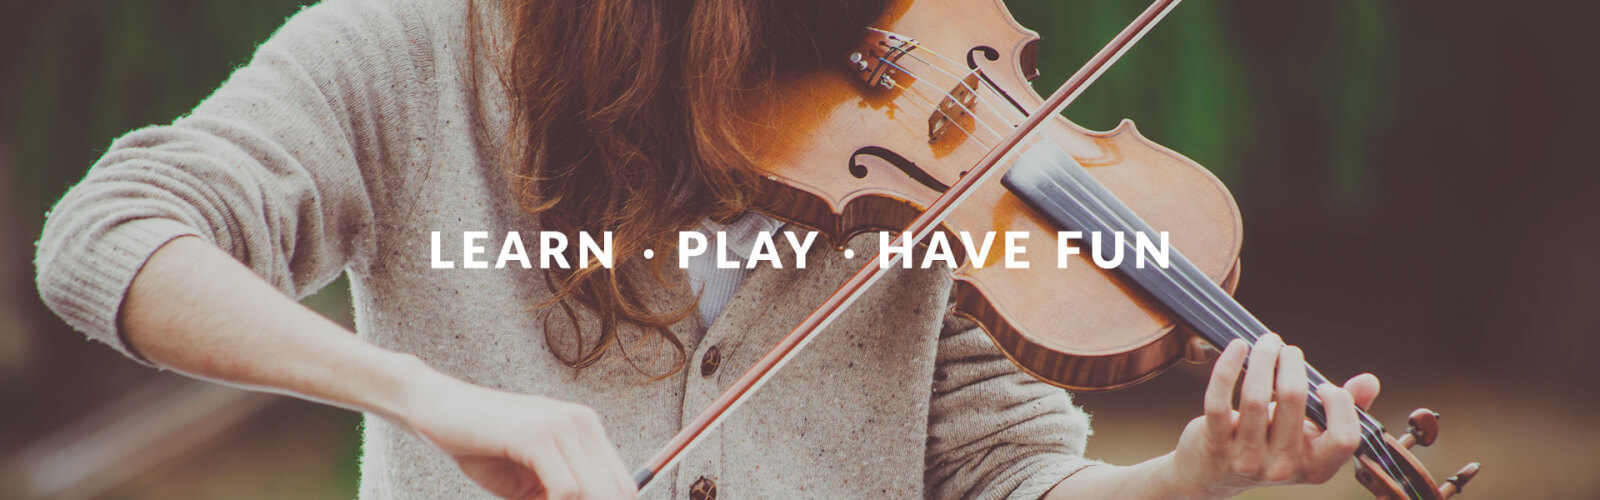 Private Music Lessons at Center Stage Music Center in Westbury, NY